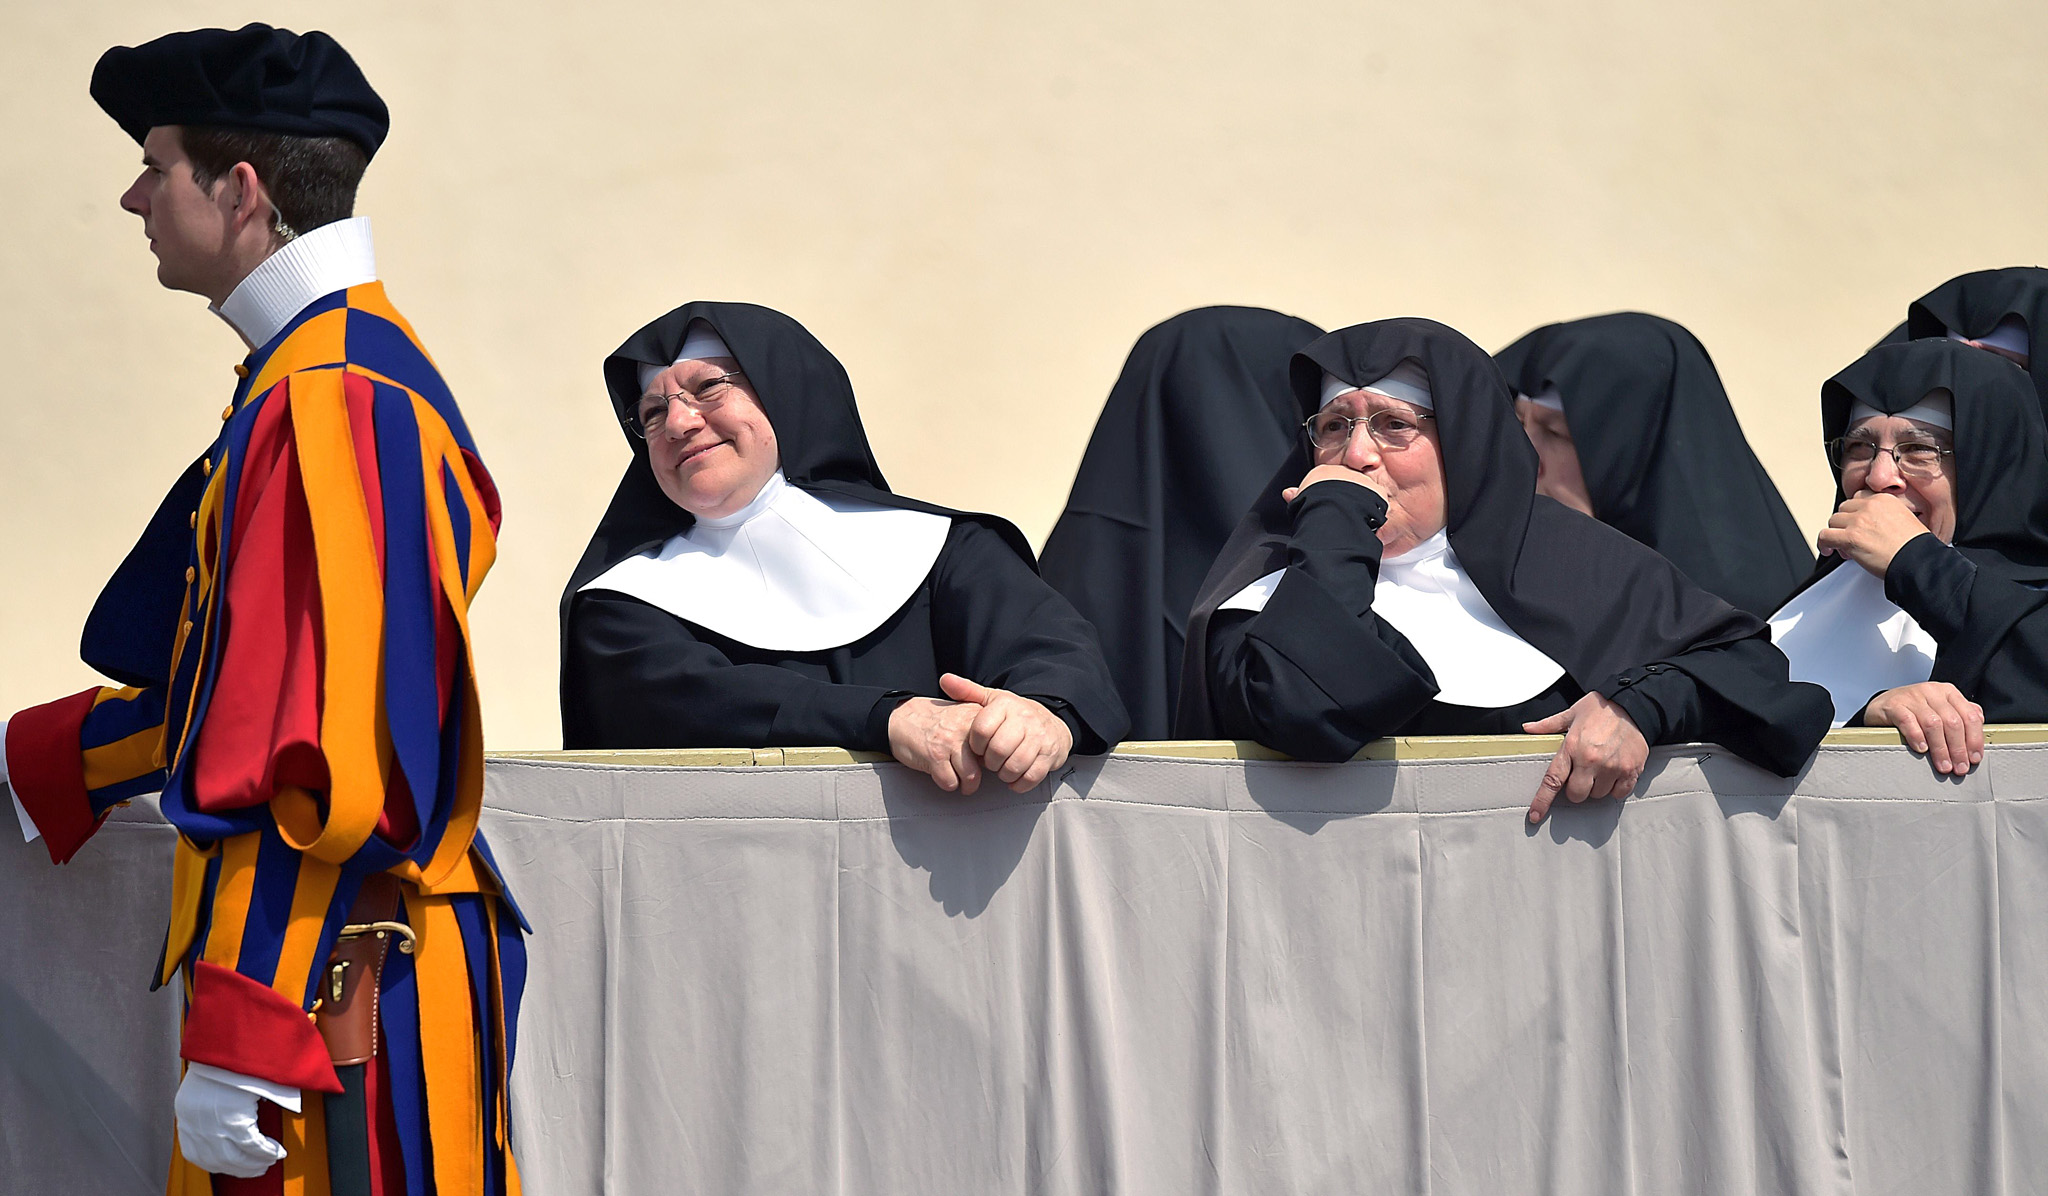 Nuns stand at St. Peter's square at the ...Nuns stand at St. Peter's square at the Vatican at the end of the Pope's weekly general audience on April 2, 2014.     AFP PHOTO / GABRIEL BOUYSGABRIEL BOUYS/AFP/Getty Images